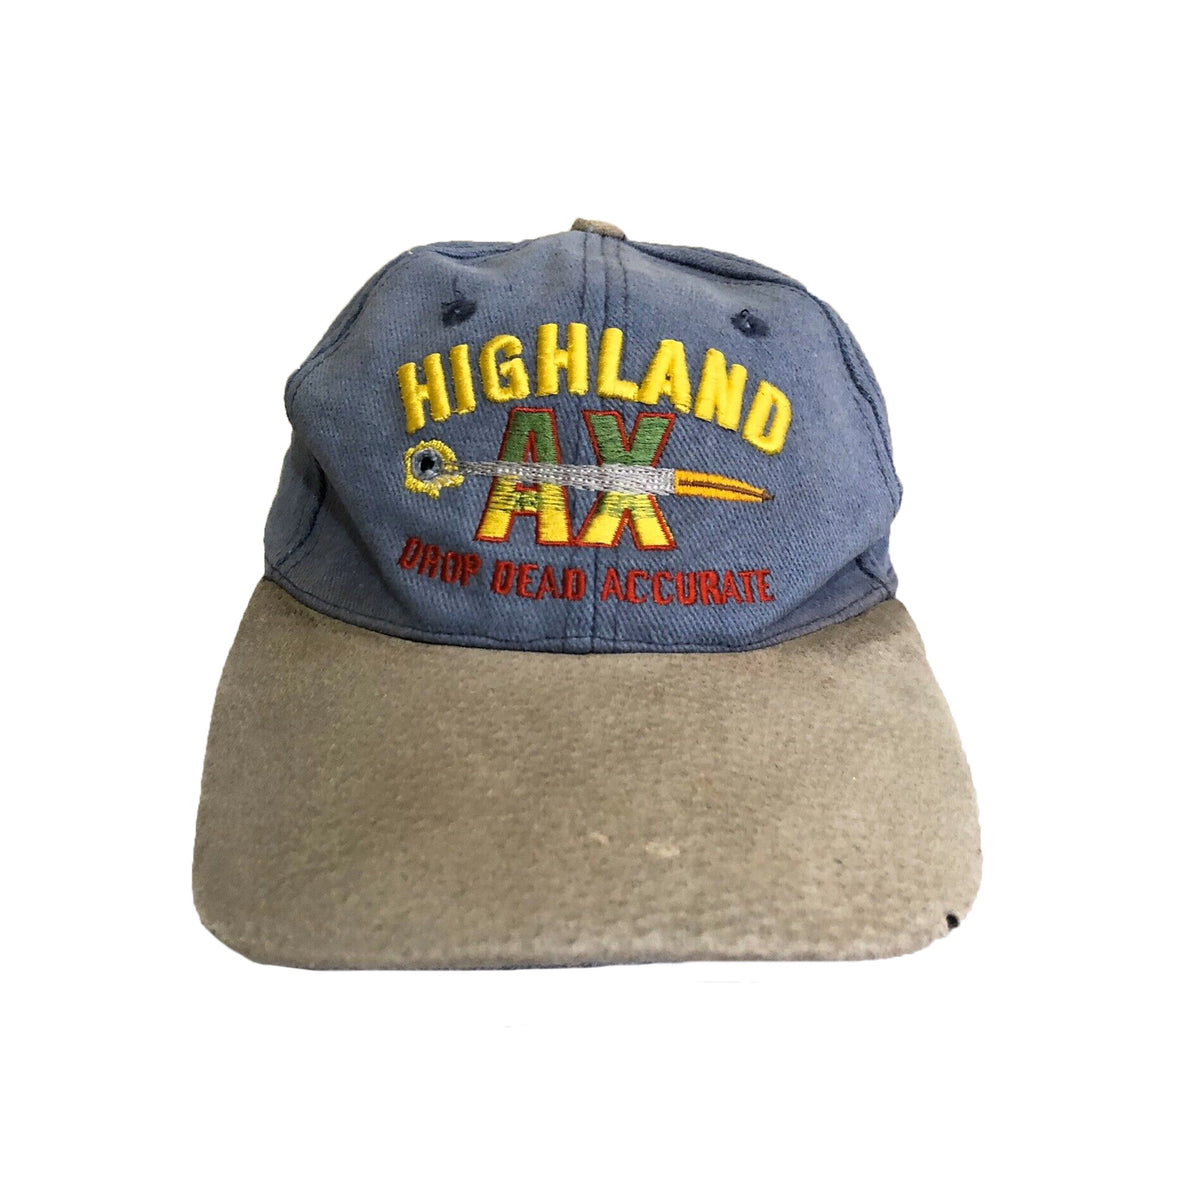 Highland AX Western Firearms Bullet Two Tone Suede Mens Cap